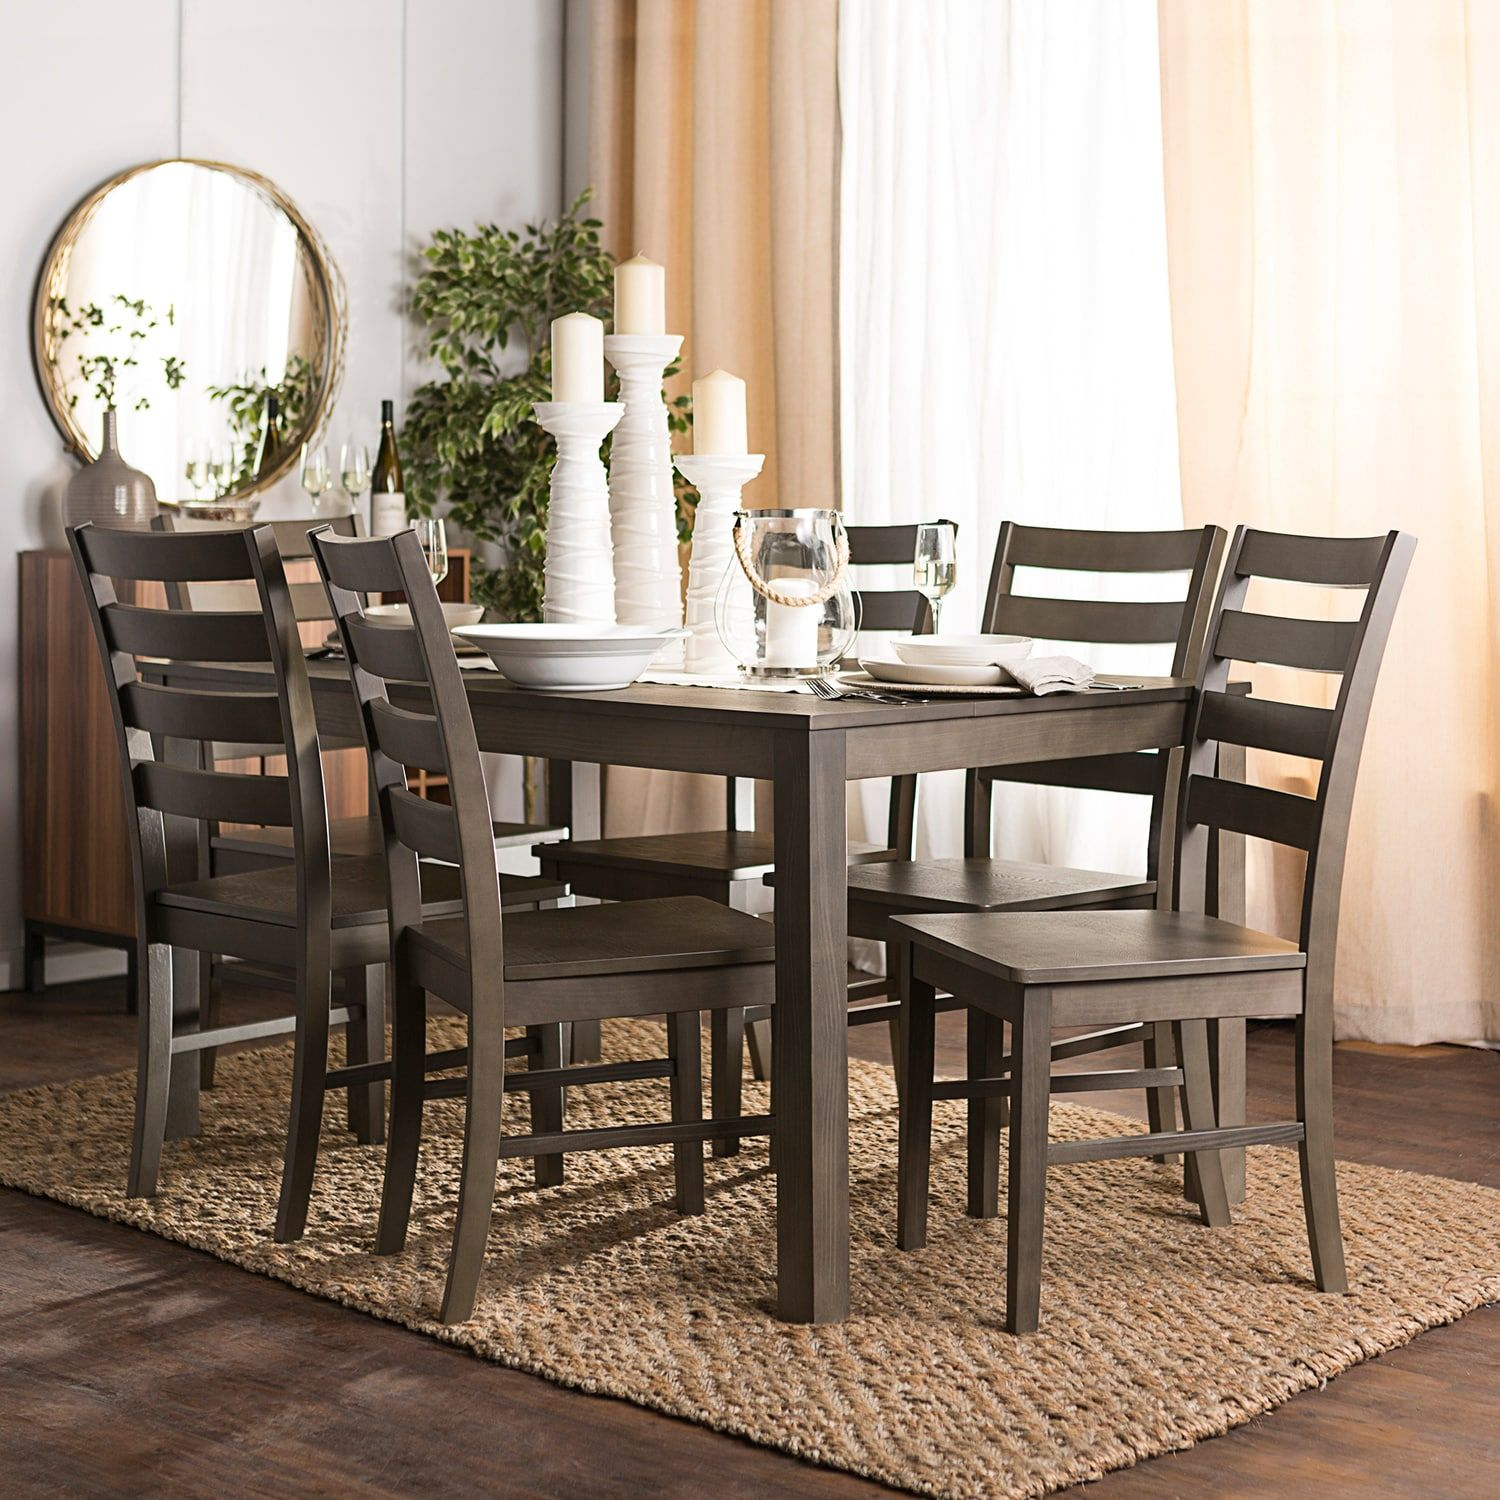 Homestead Aged Gray 7Piece Dining Set Dining room sets